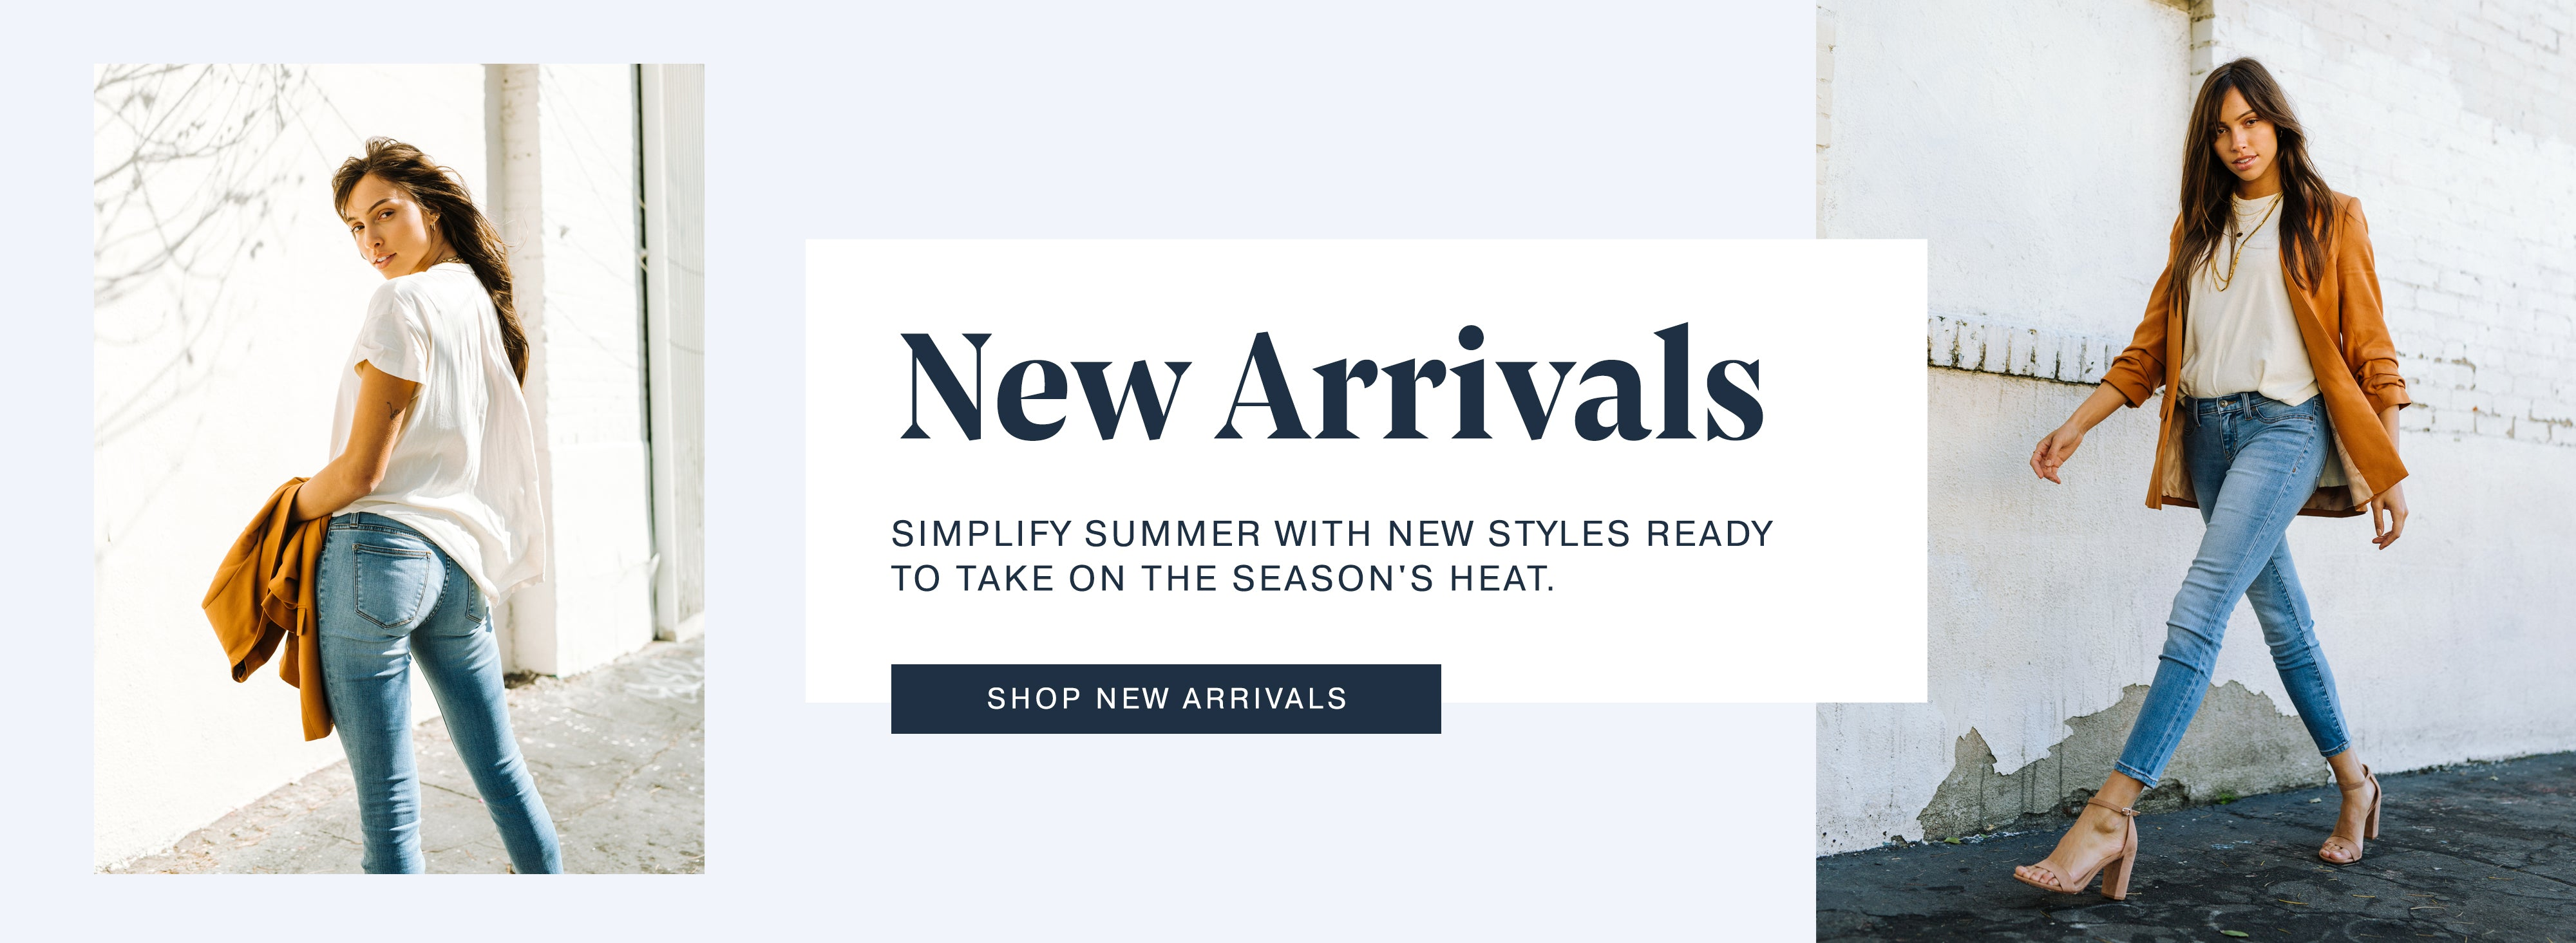 Shop new arrivals to simplify summer and take on the heat.